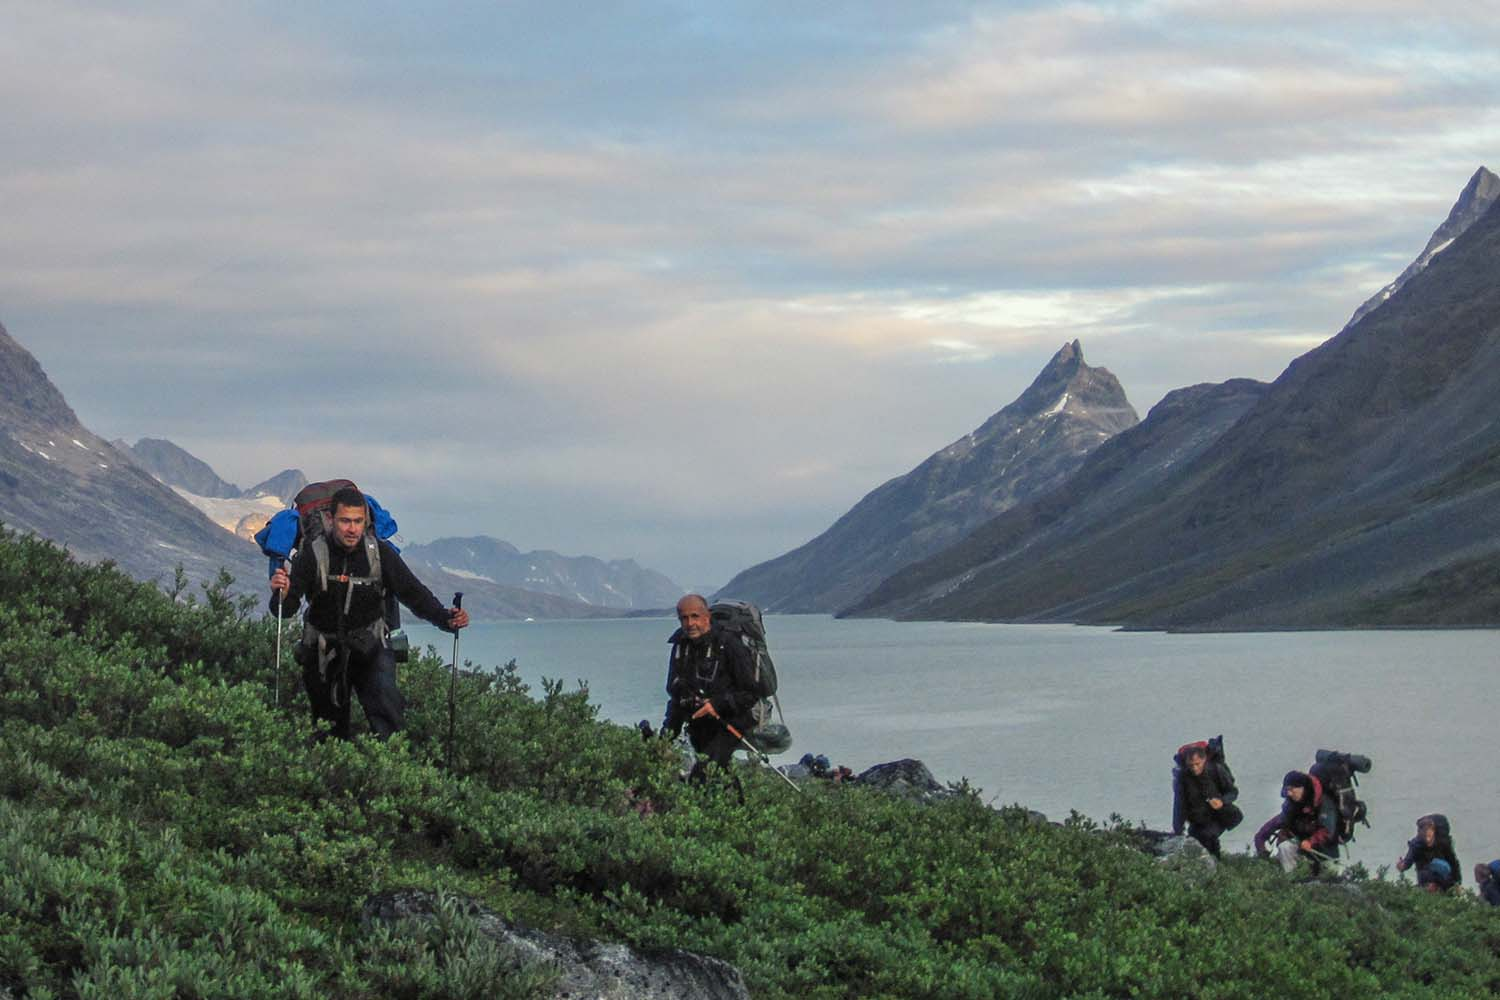 Backpacking along an ancient Inuit Trail